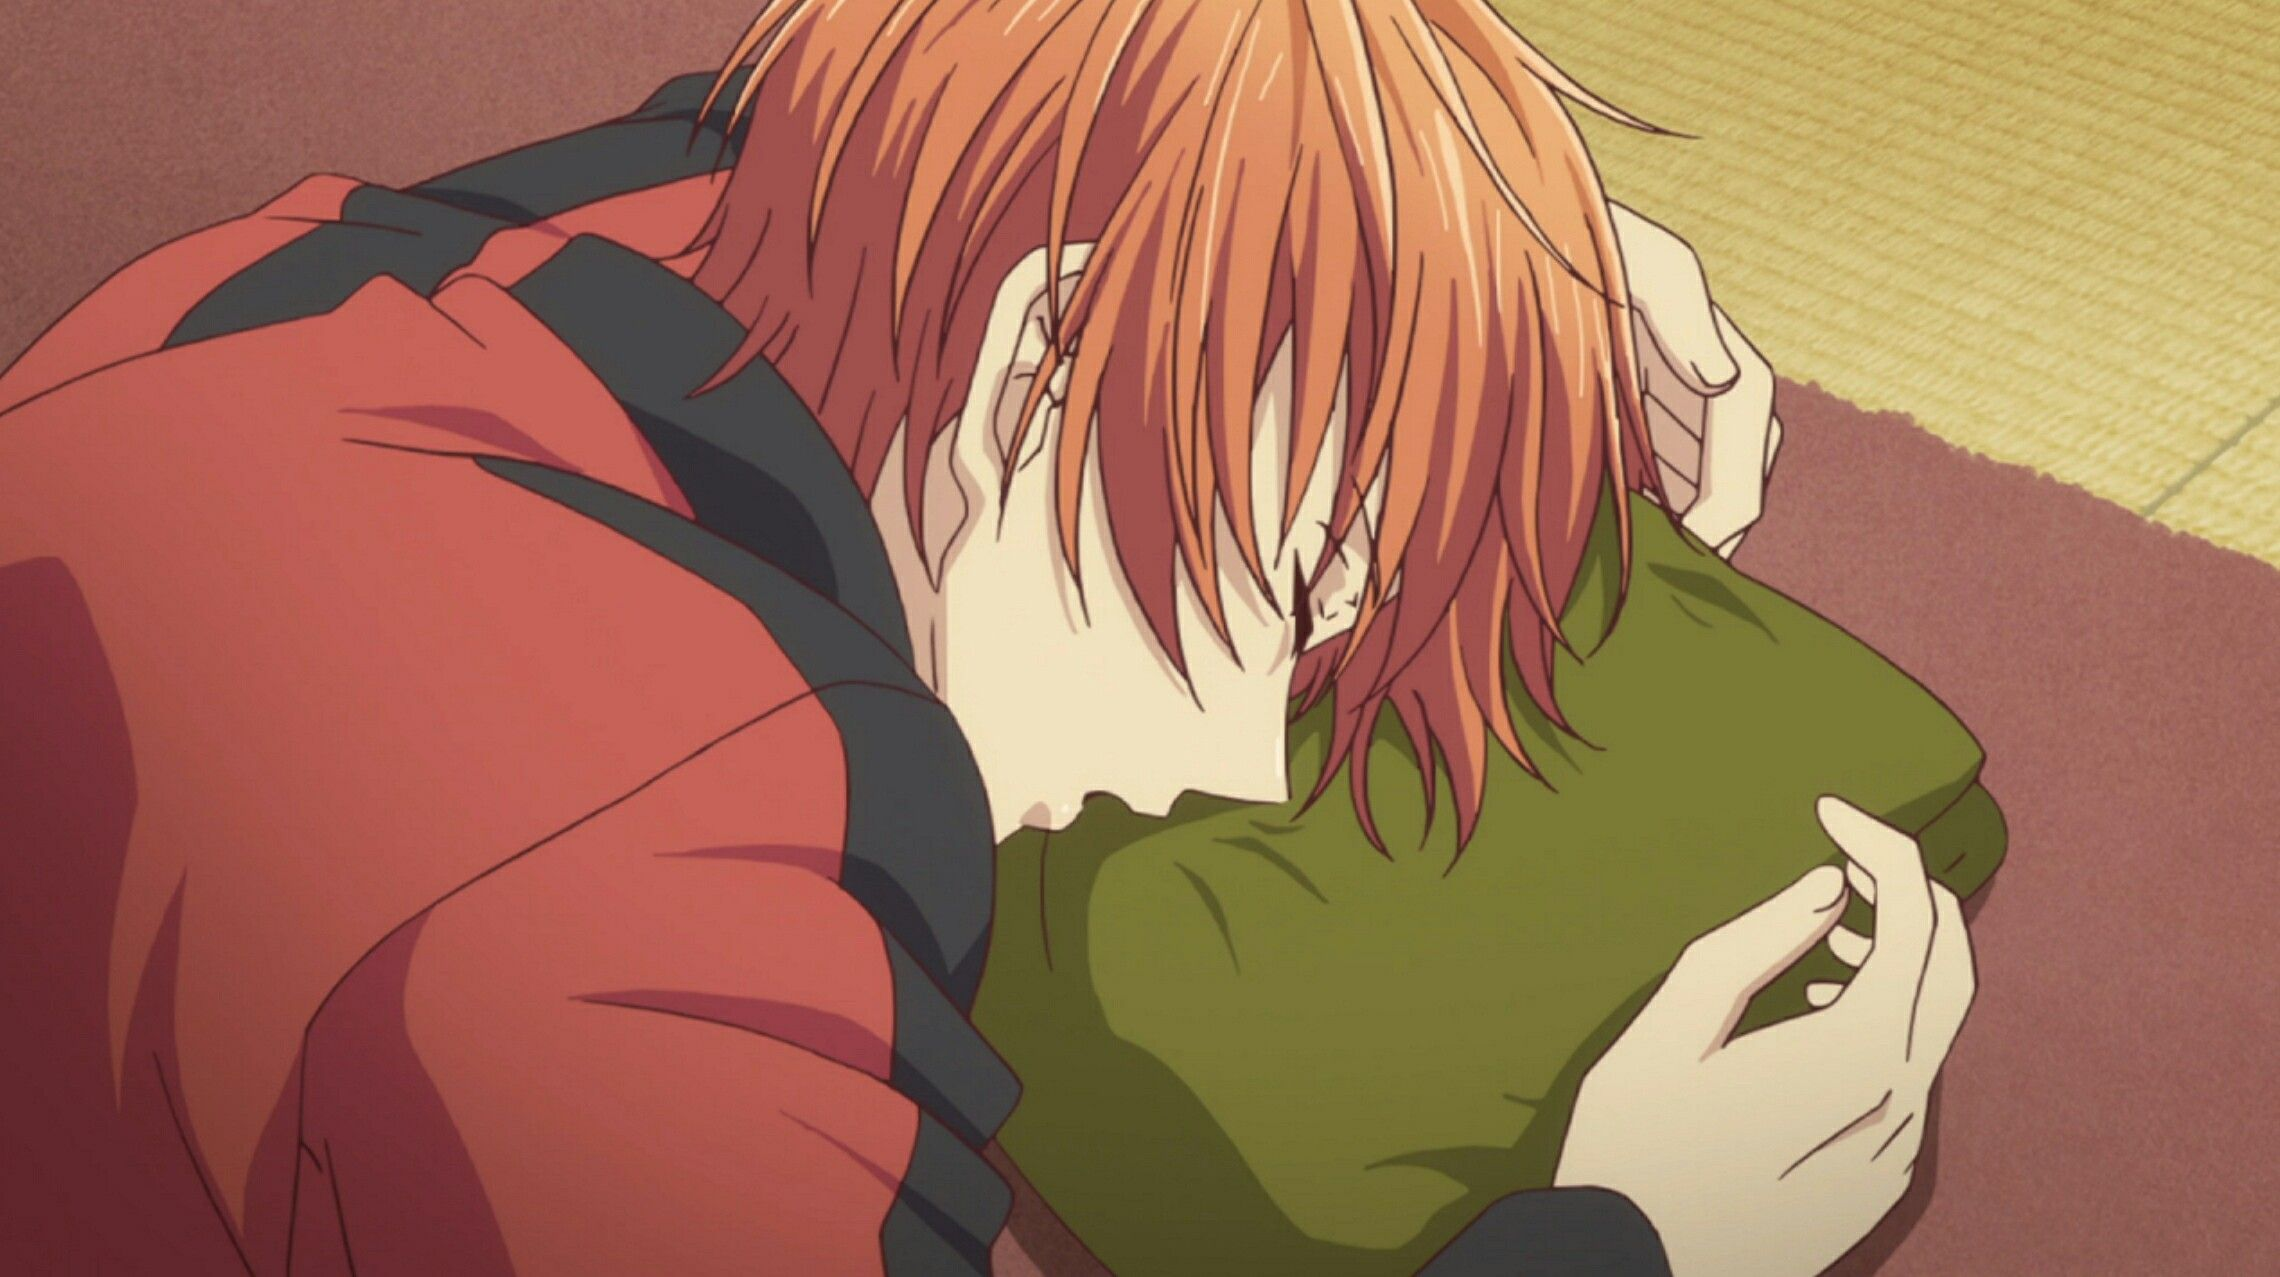 Pin by heather brewer on fruits basket fruits basket